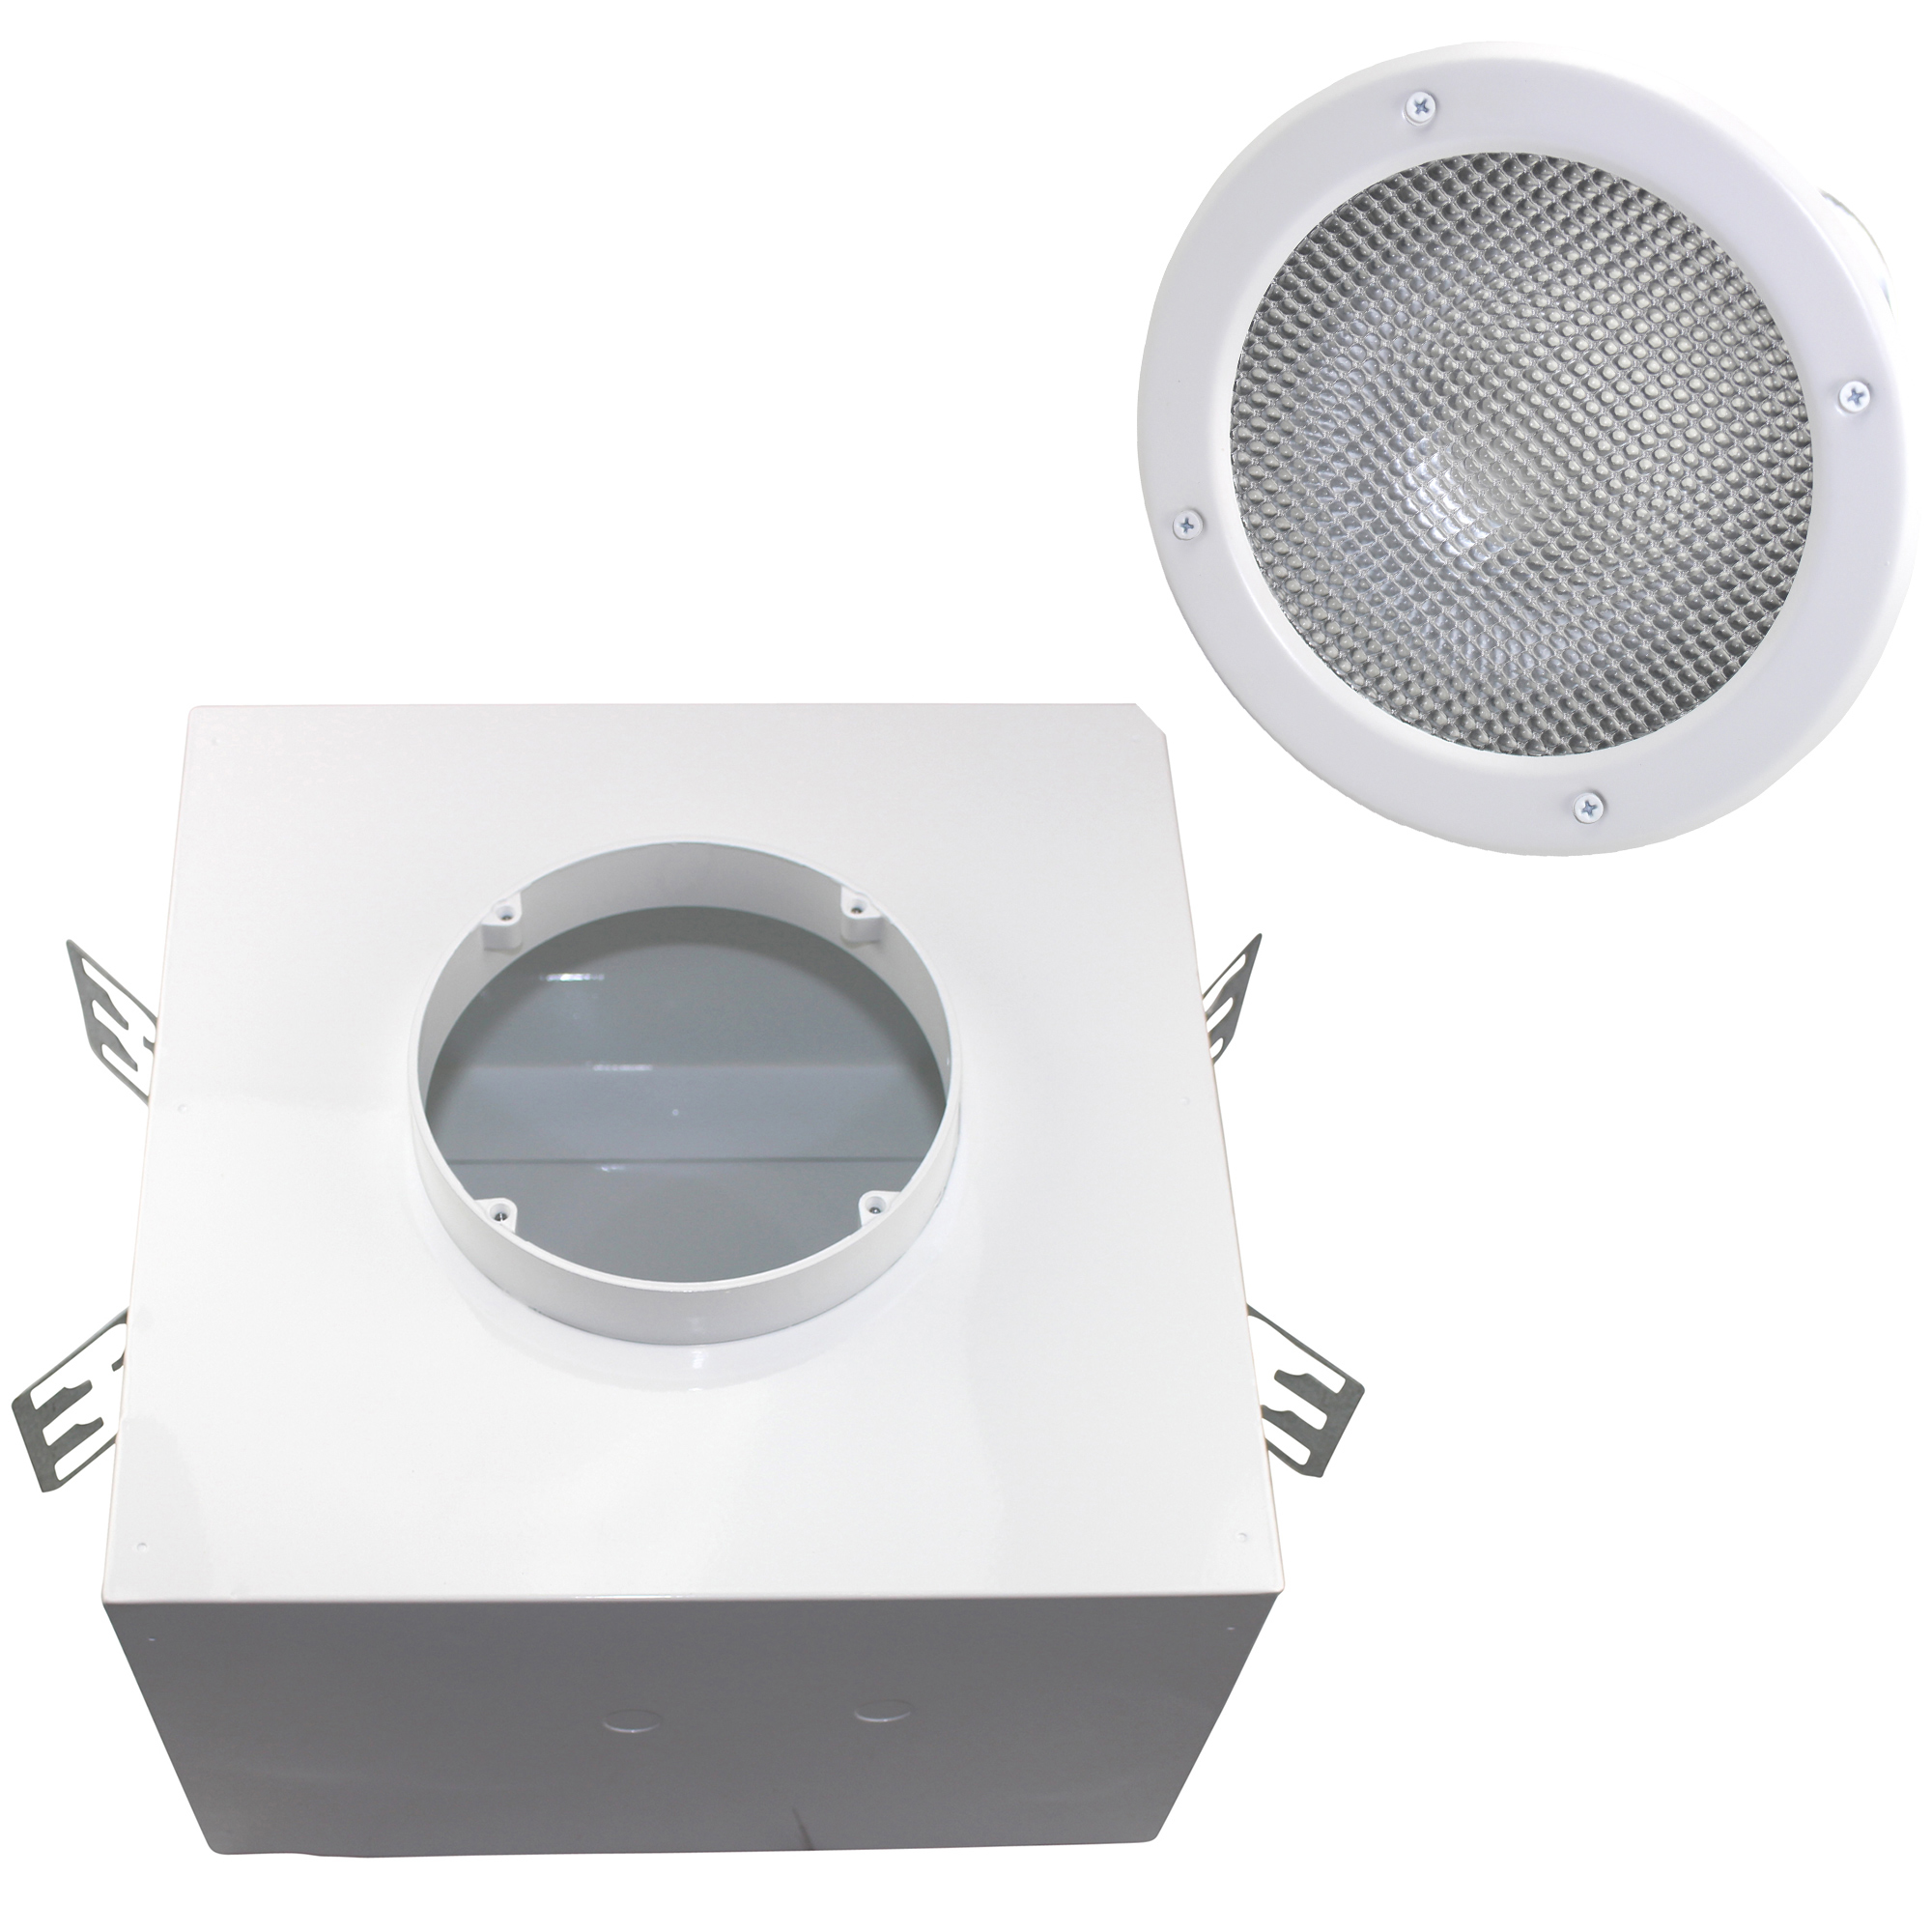 This Auction is for 1 KENALL LIGHTING RHA6VF + HADL6VF 6  MILLENIUM DOWNLIGHT RECESSED LIGHTING KIT  sc 1 st  eBay & KENALL LIGHTING RHA6VF + HADL6VF 6